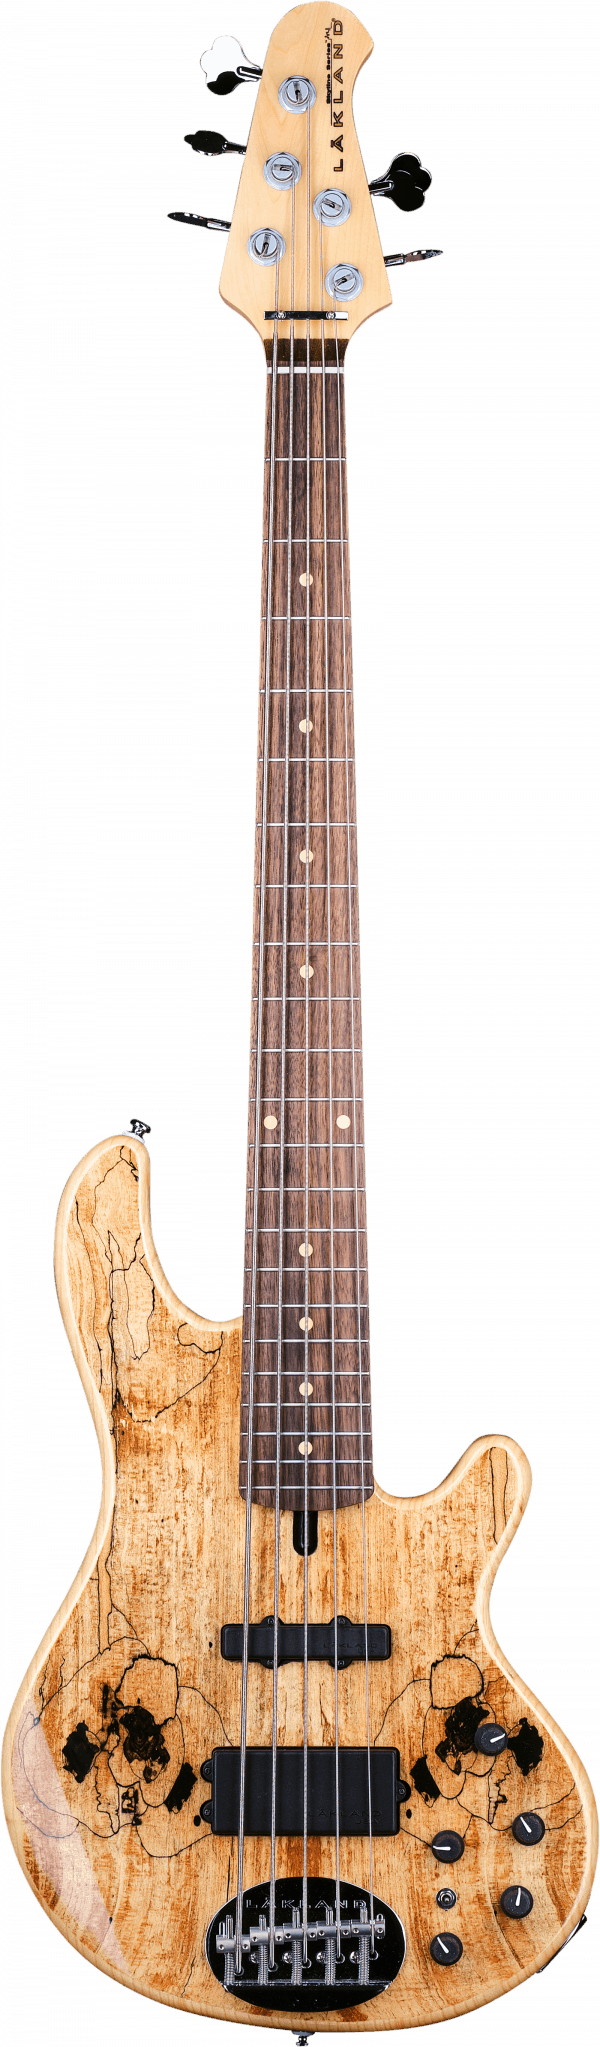 Lakland Skyline 55-02 Deluxe Spalted Maple